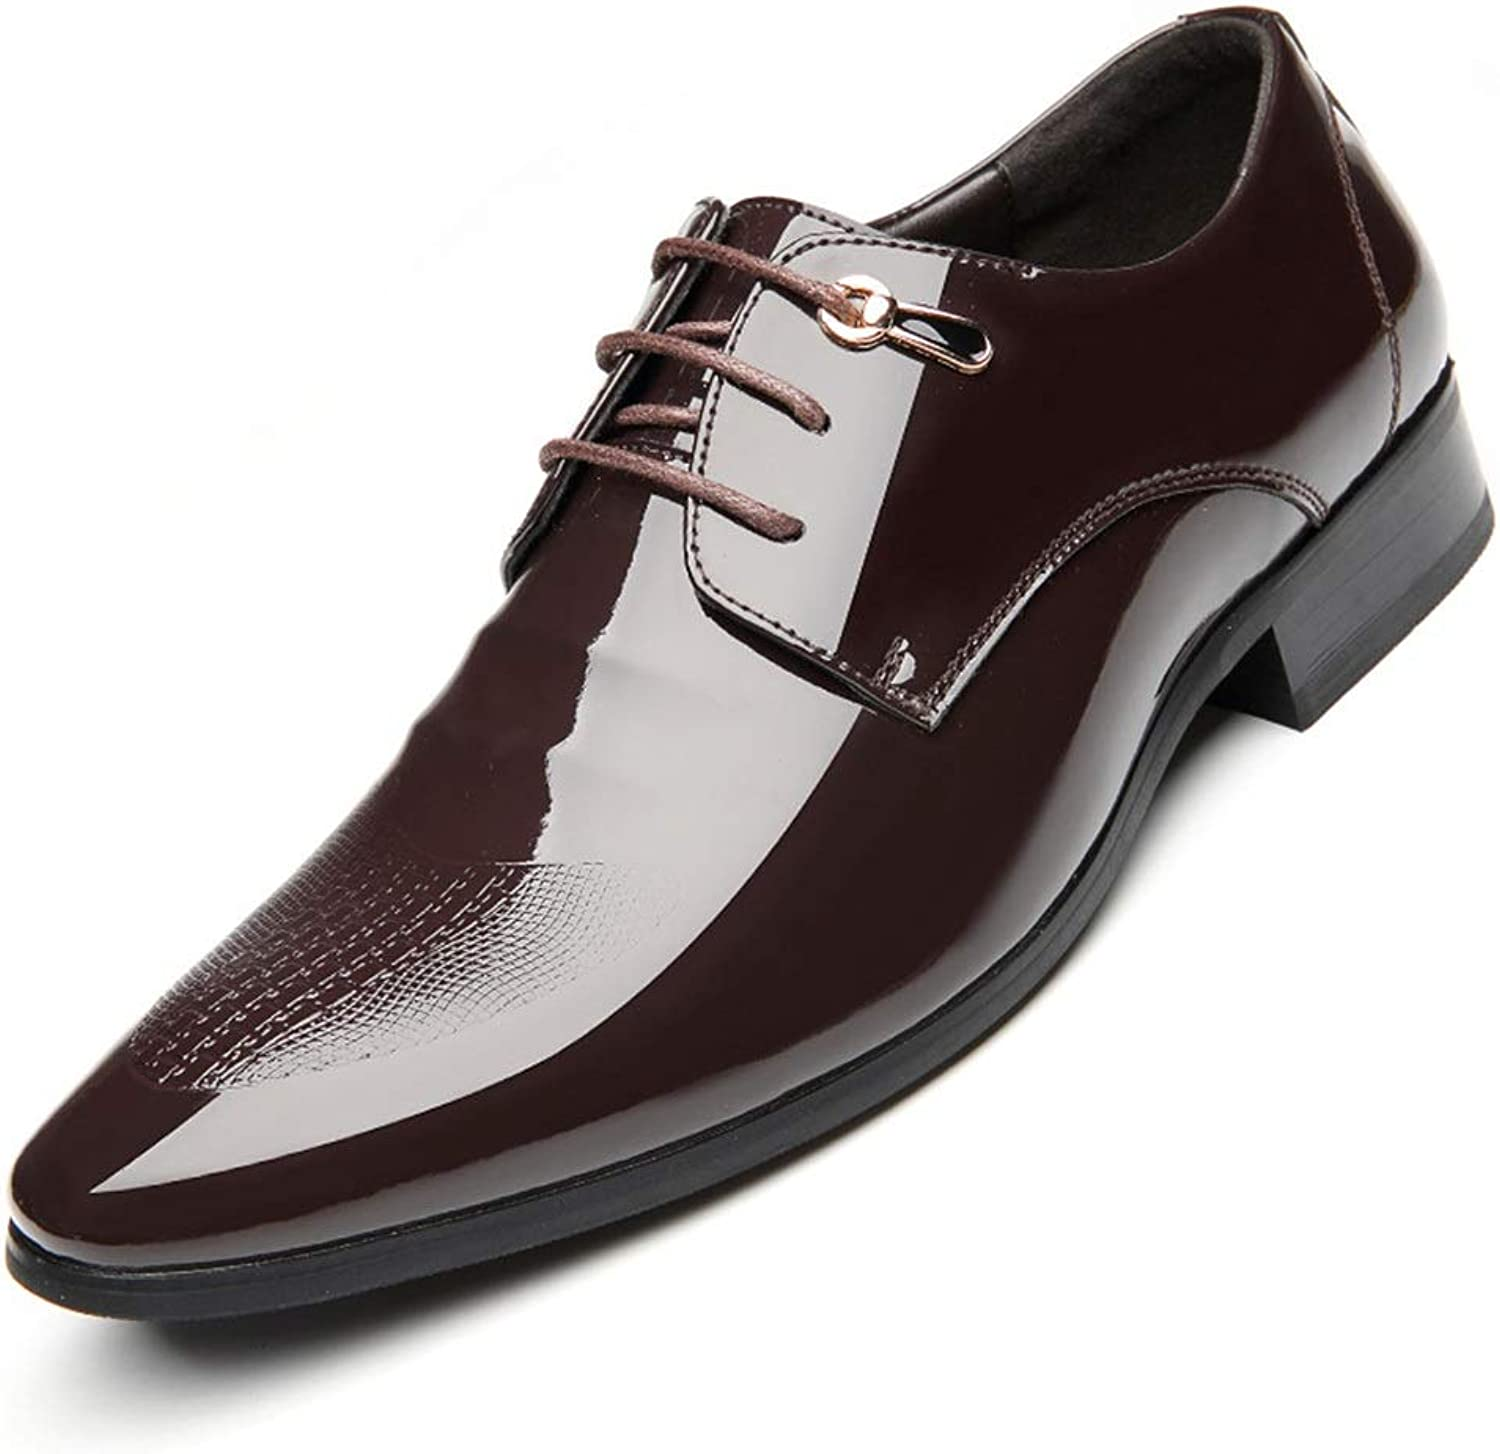 Carved Handmade shoes Formal Men's shoes, Two-layer Leather Suit, Men's Leather shoes, Fashion (color   Brown, Size   41)